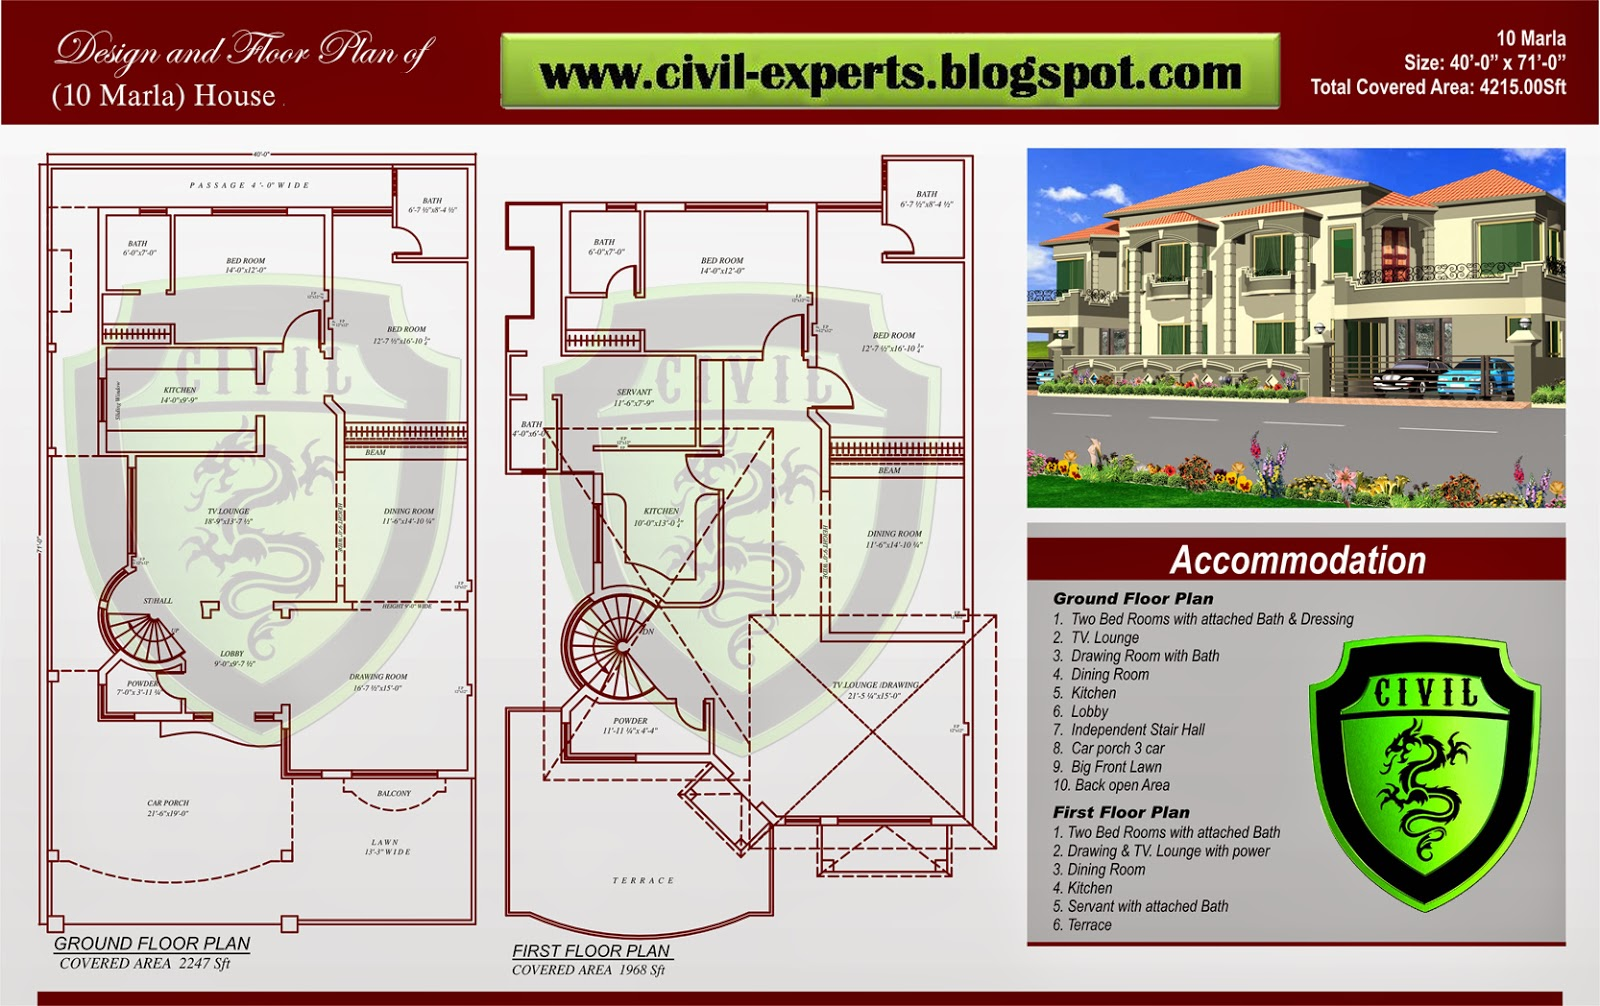 Civil experts 10 marla house plans for 10 room house plan